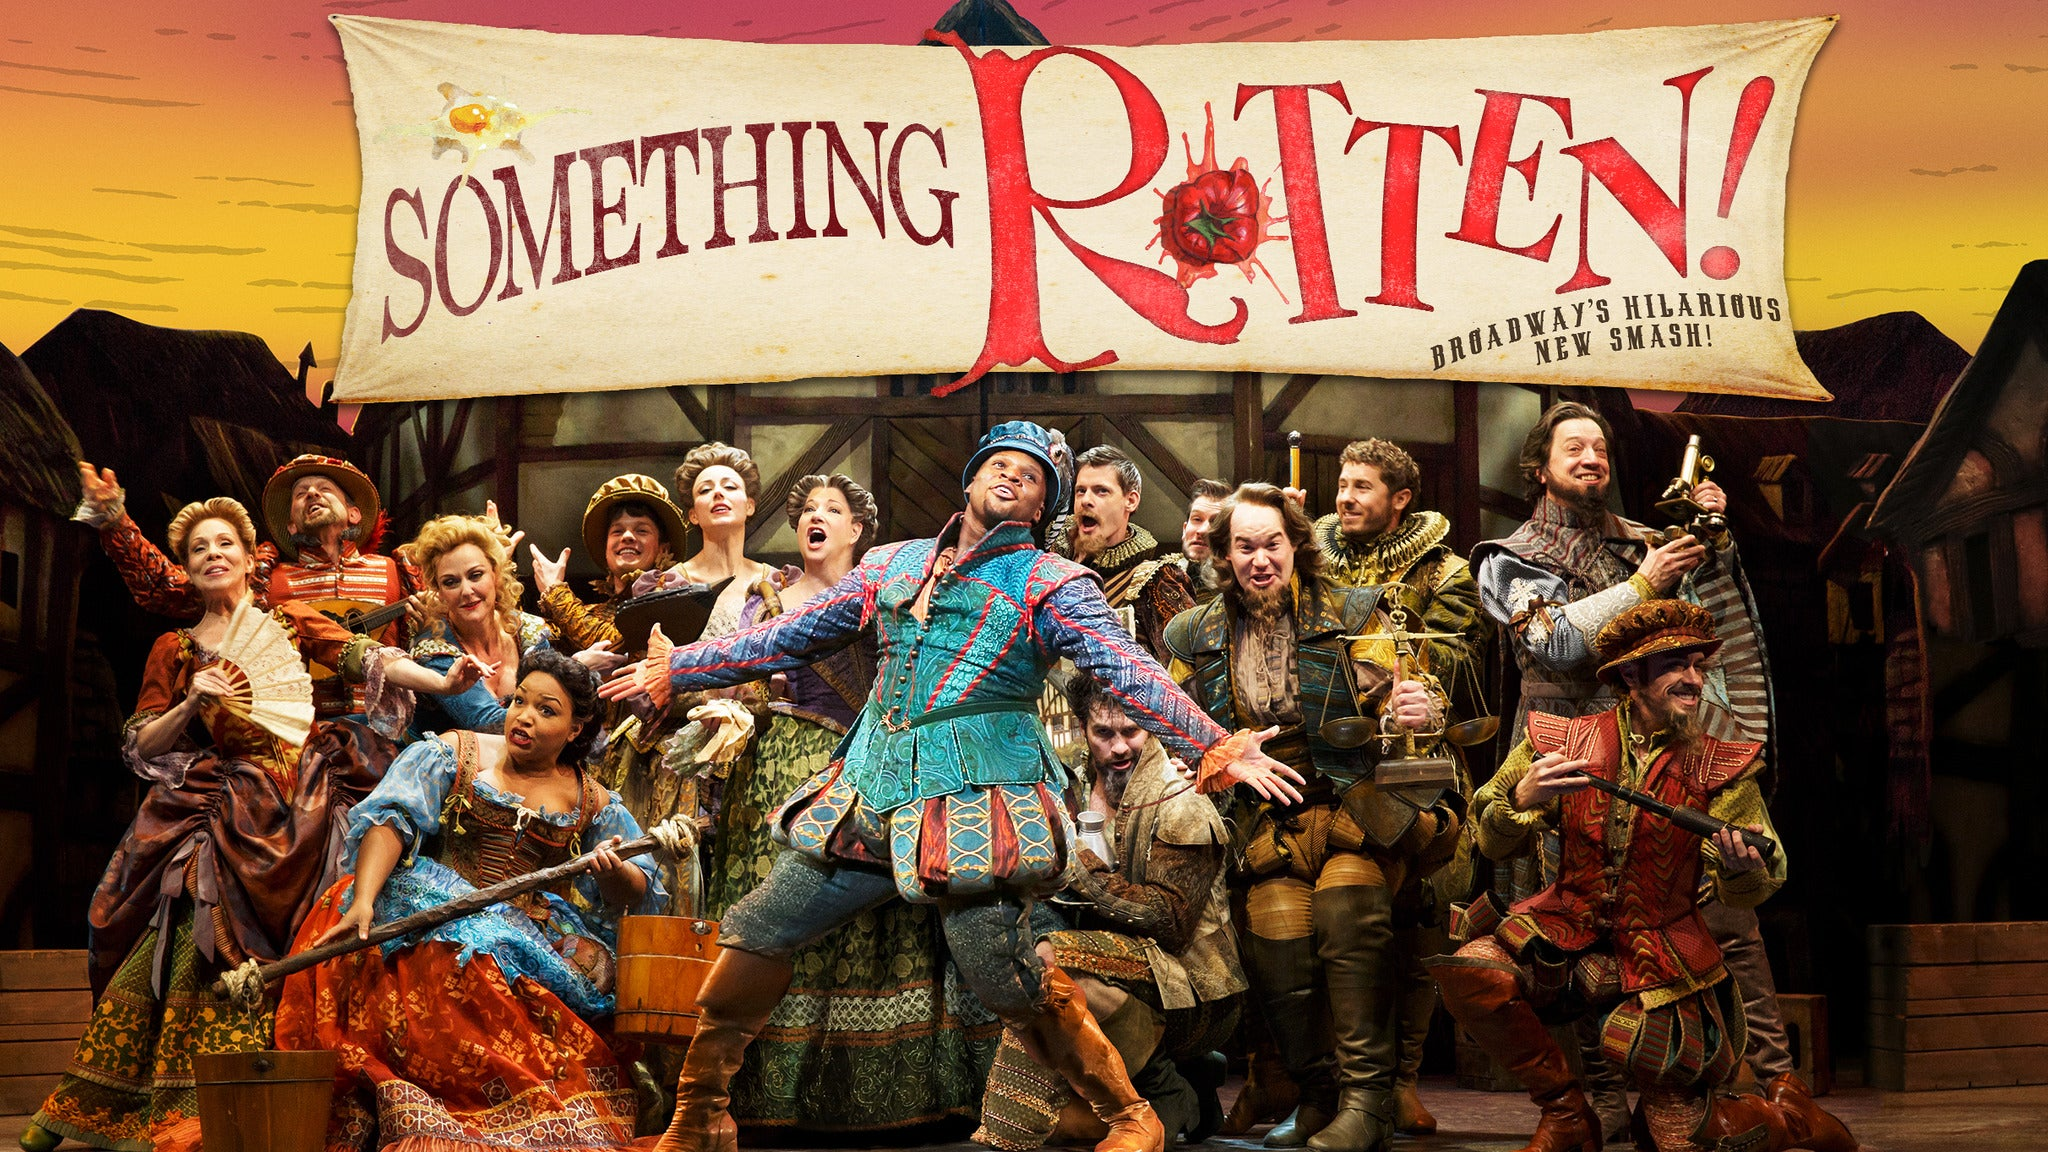 SORRY, THIS EVENT IS NO LONGER ACTIVE<br>Something Rotten! at Orpheum Theatre-San Francisco - San Francisco, CA 94102